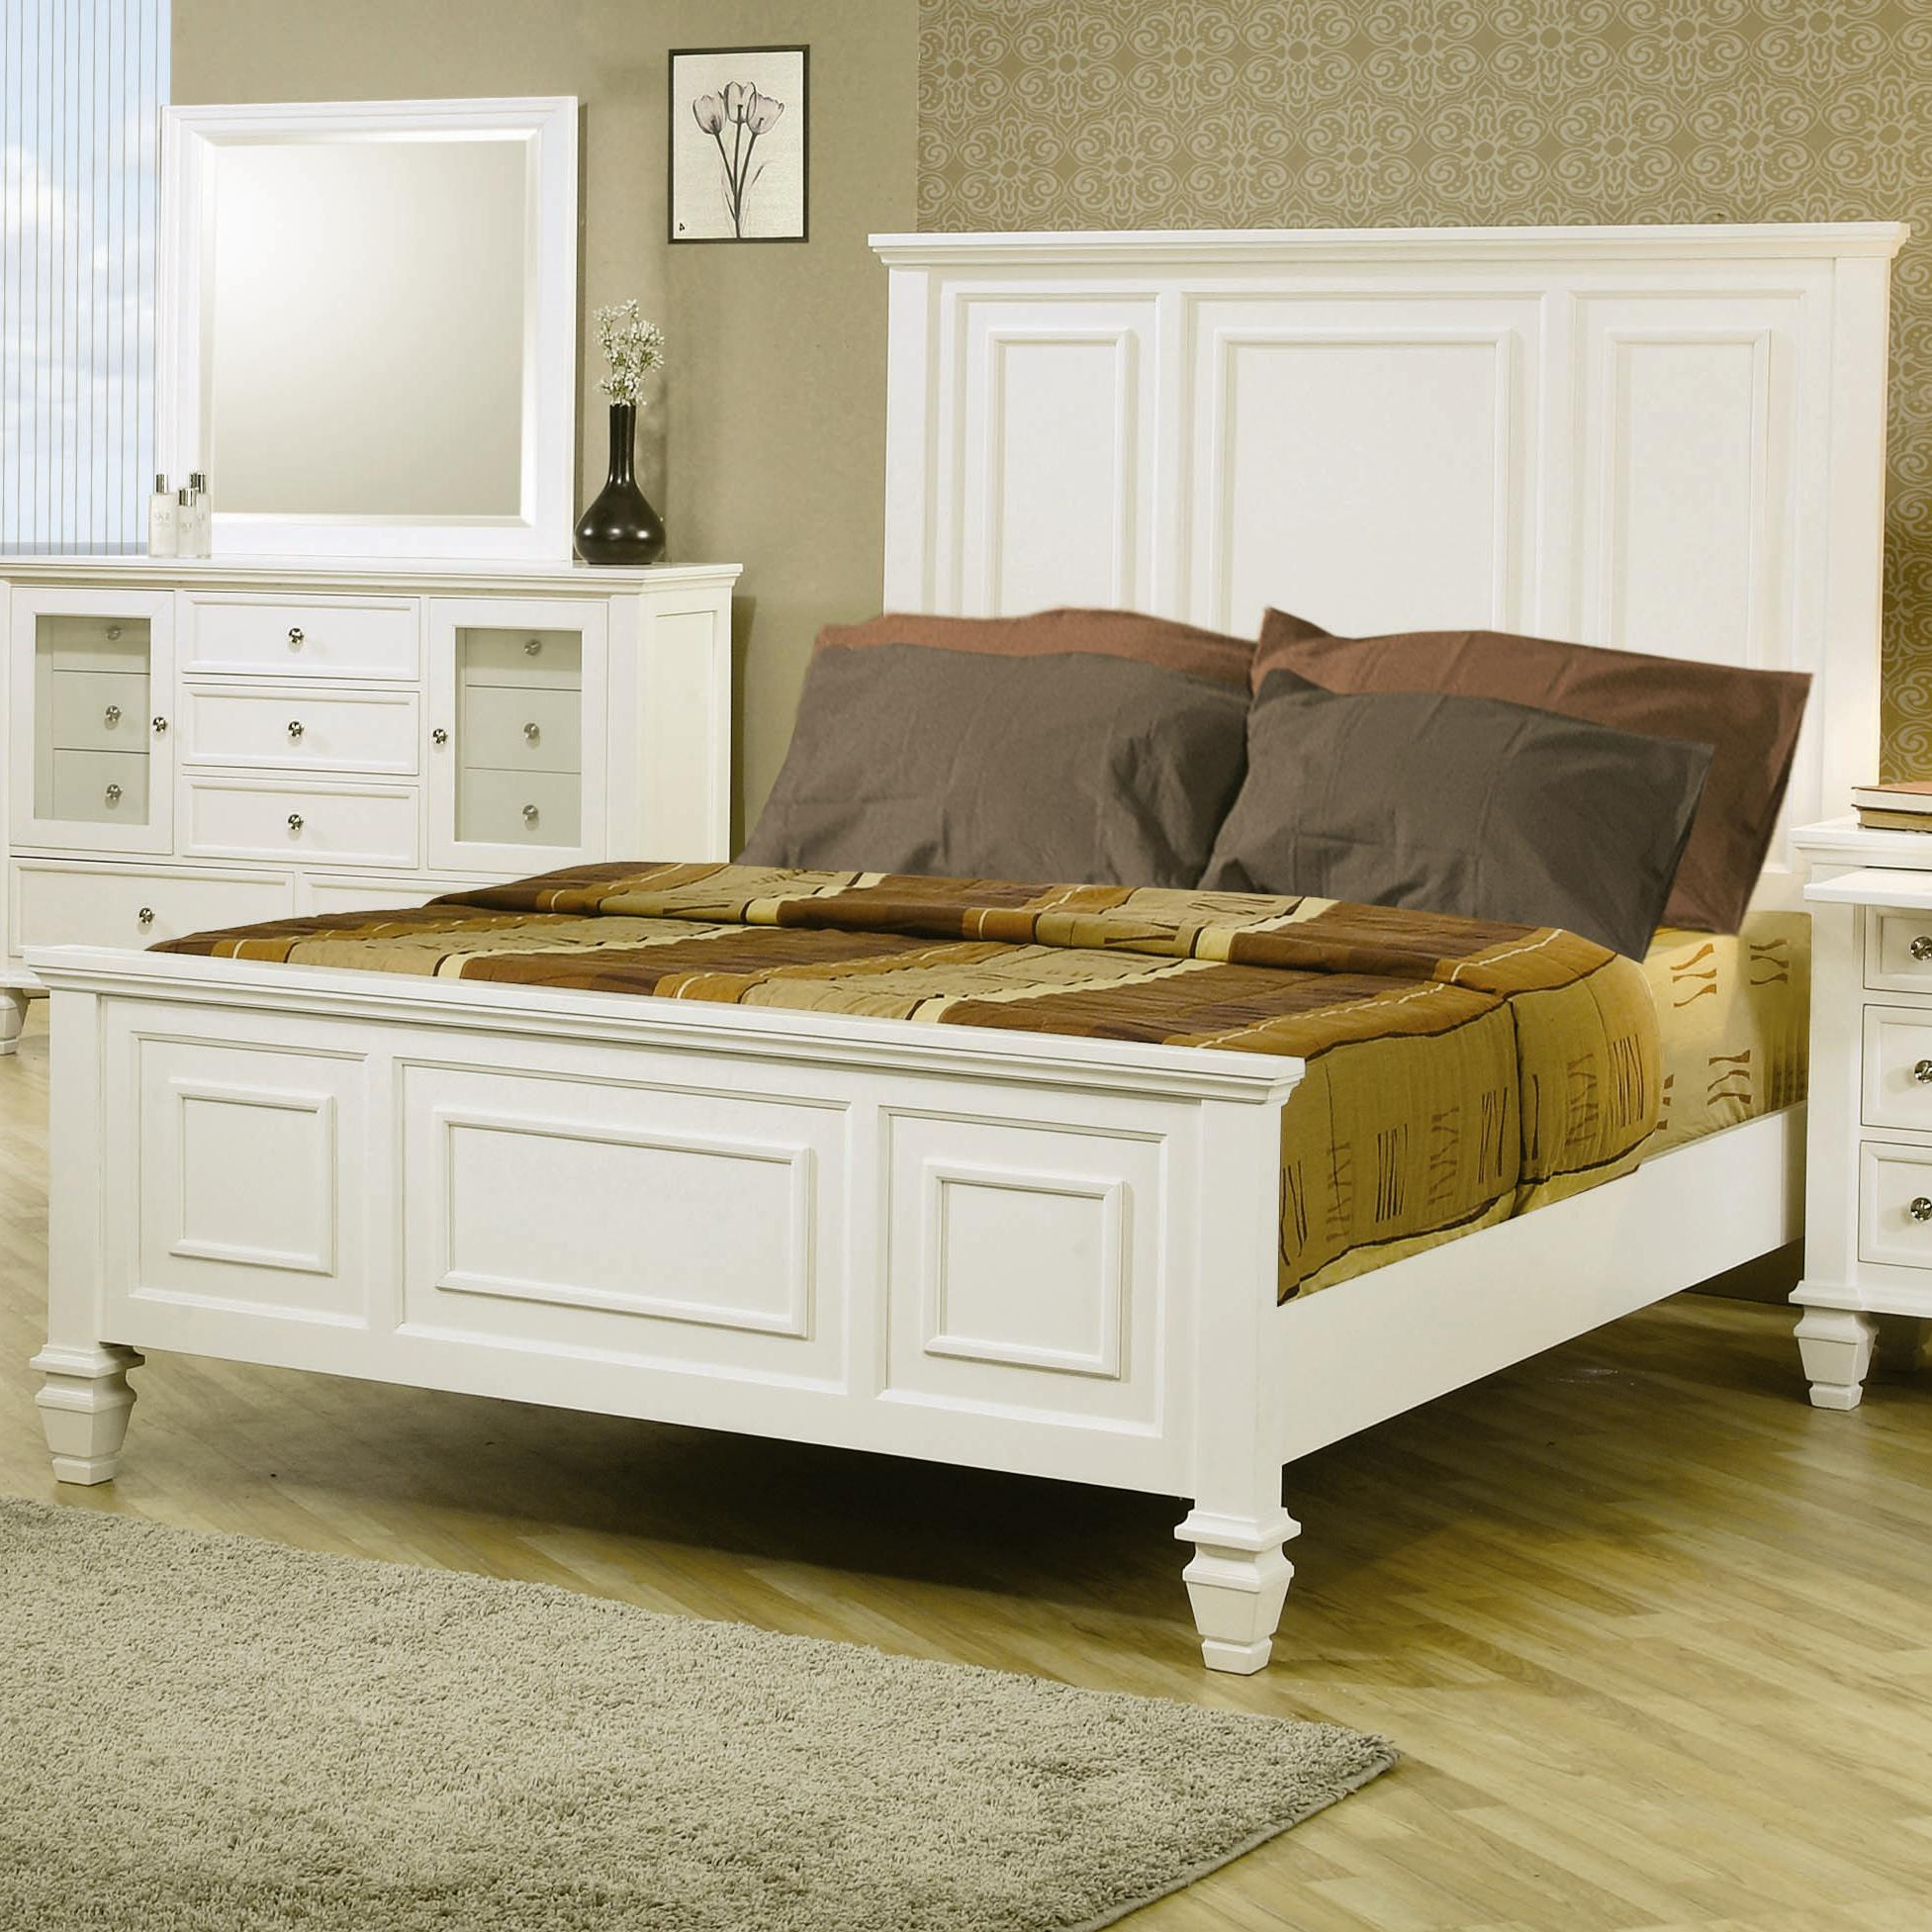 Coaster Sandy Beach California King Headboard & Footboard Bed - Item Number: 201301KW